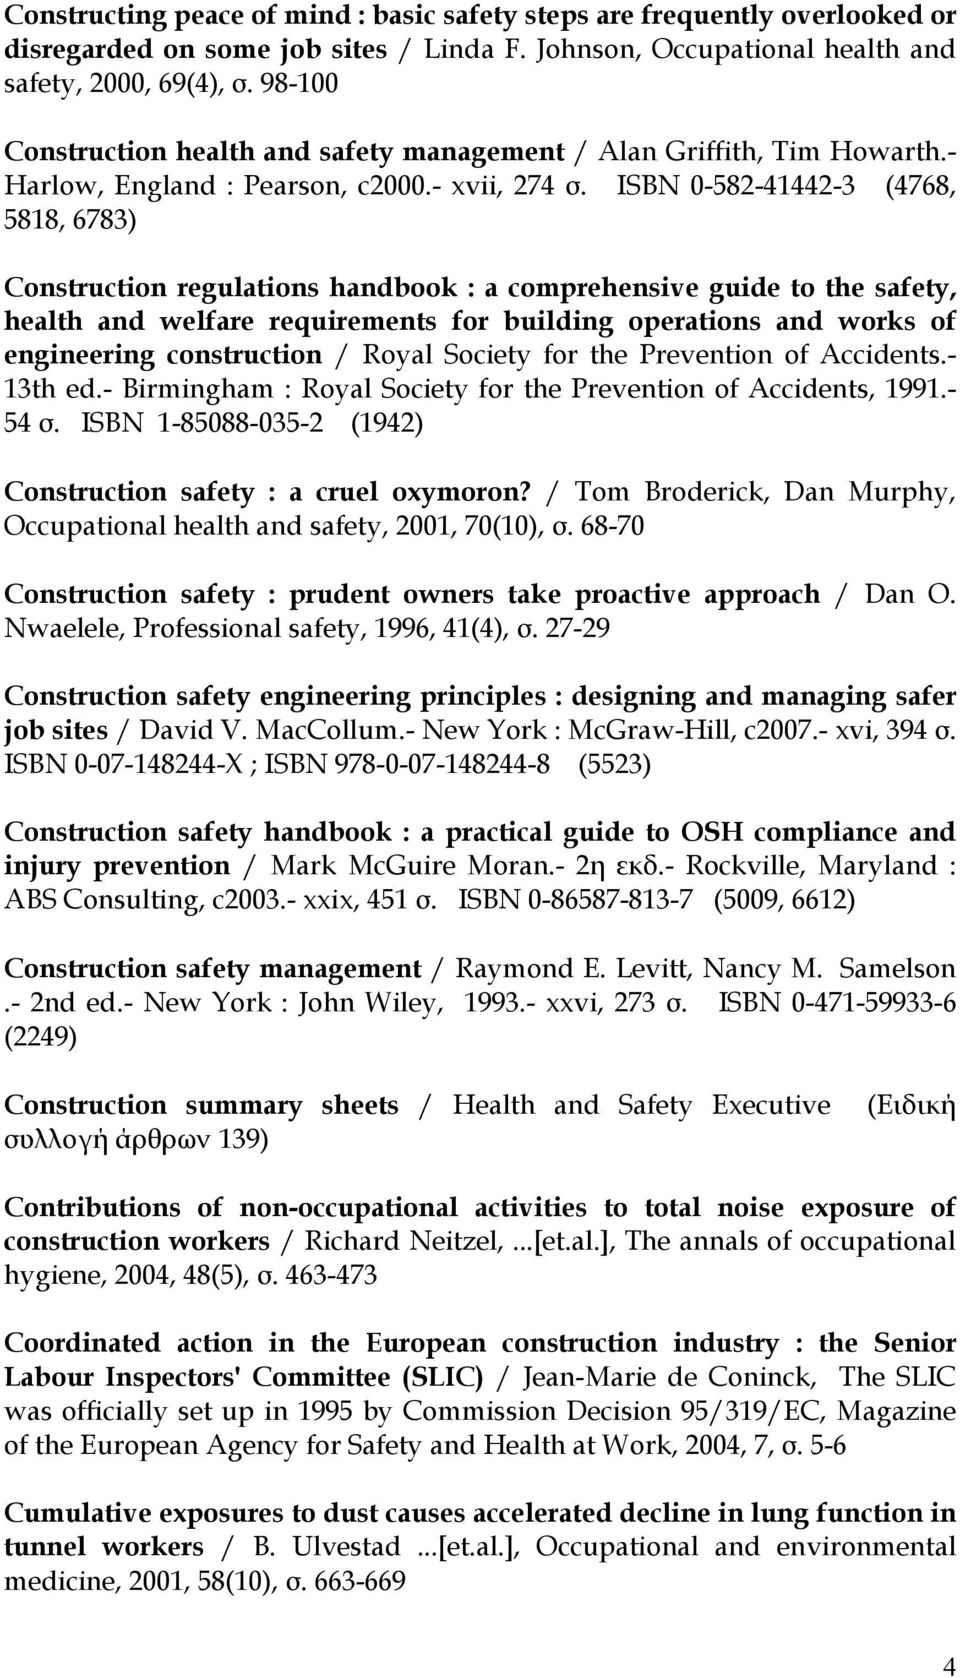 ISBN 0-582-41442-3 (4768, 5818, 6783) Construction regulations handbook : a comprehensive guide to the safety, health and welfare requirements for building operations and works of engineering